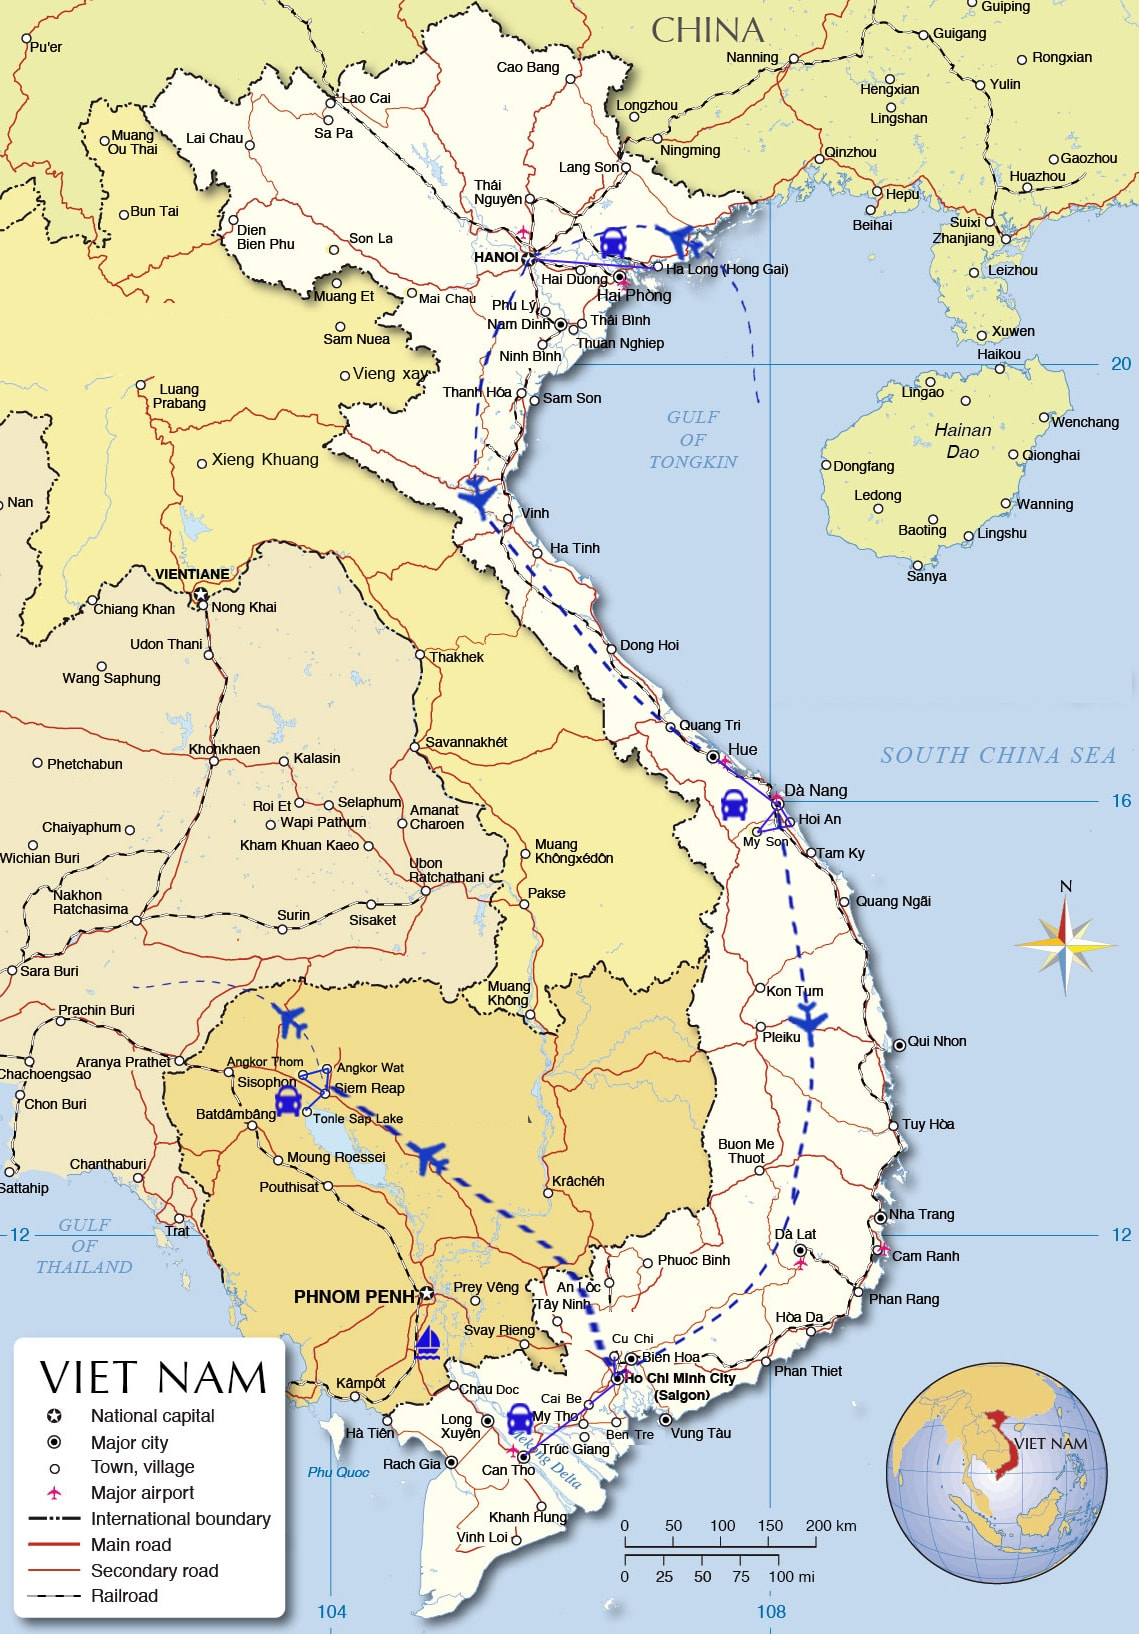 IFT04: Highlights of Vietnam & Cambodia - 15 days from Hanoi map